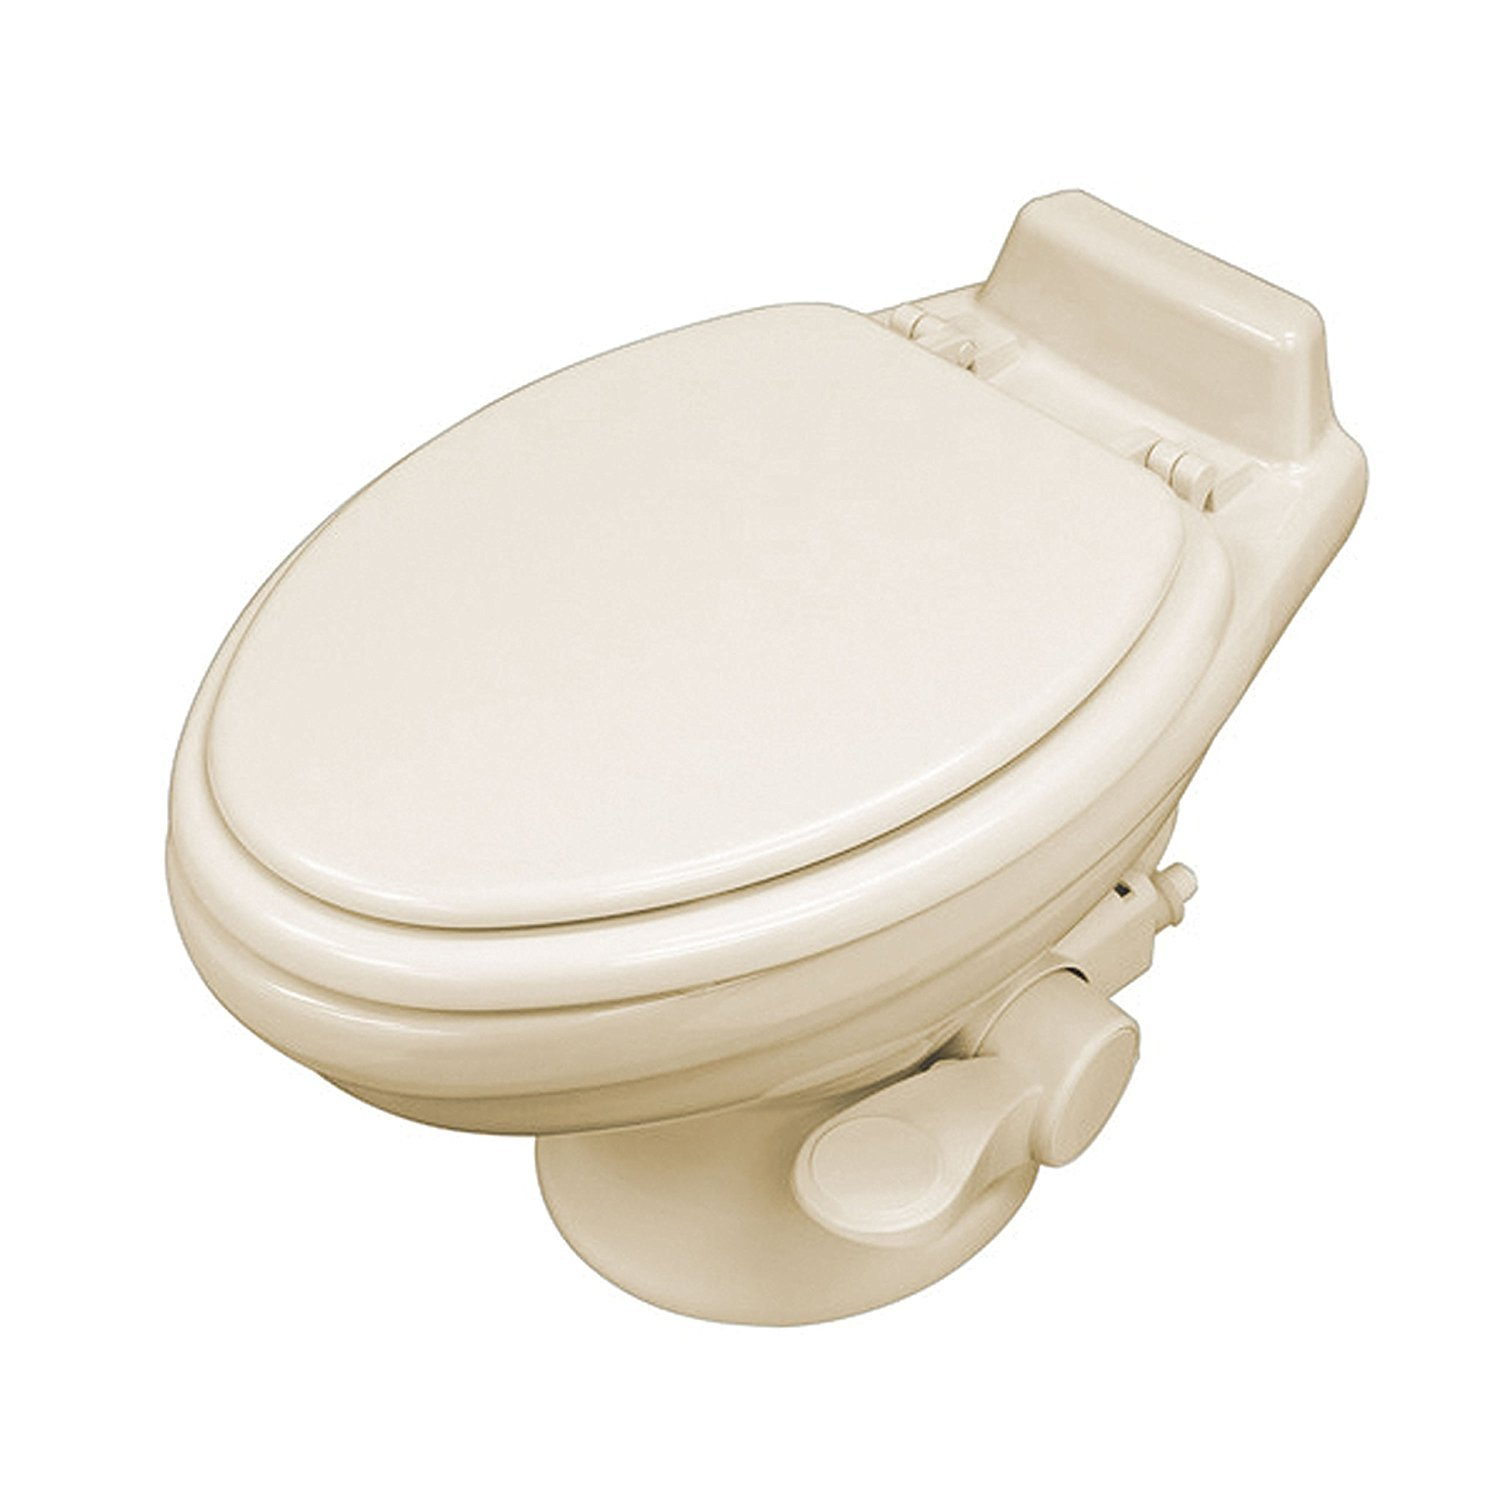 Dometic 320 Series Low Profile Toilet w/ Hand Spray, Bone by Dometic